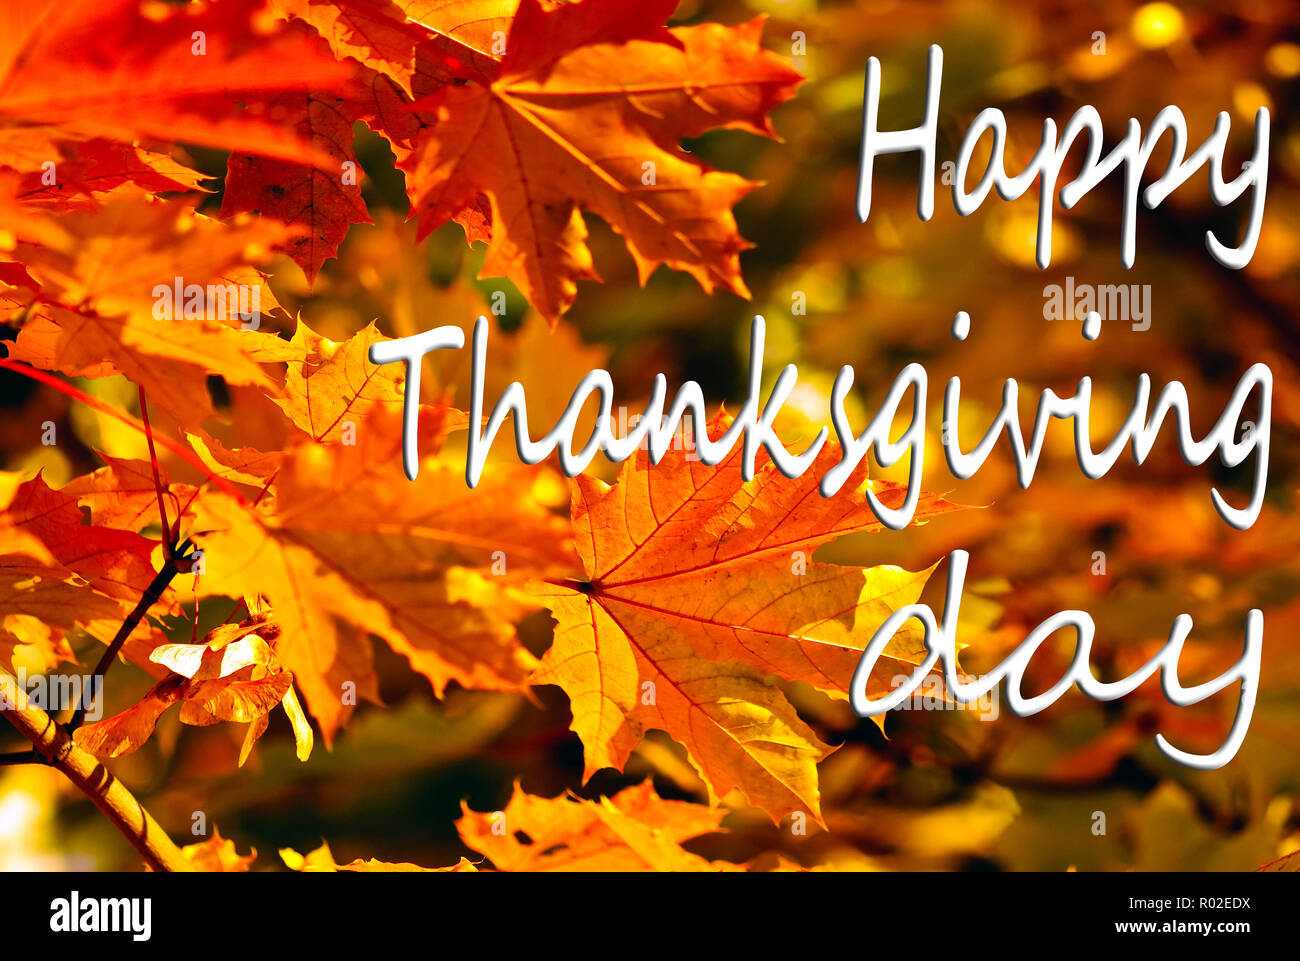 Happy Thanksgiving Greeting, autumn background of colorfull  leaves - Stock Image